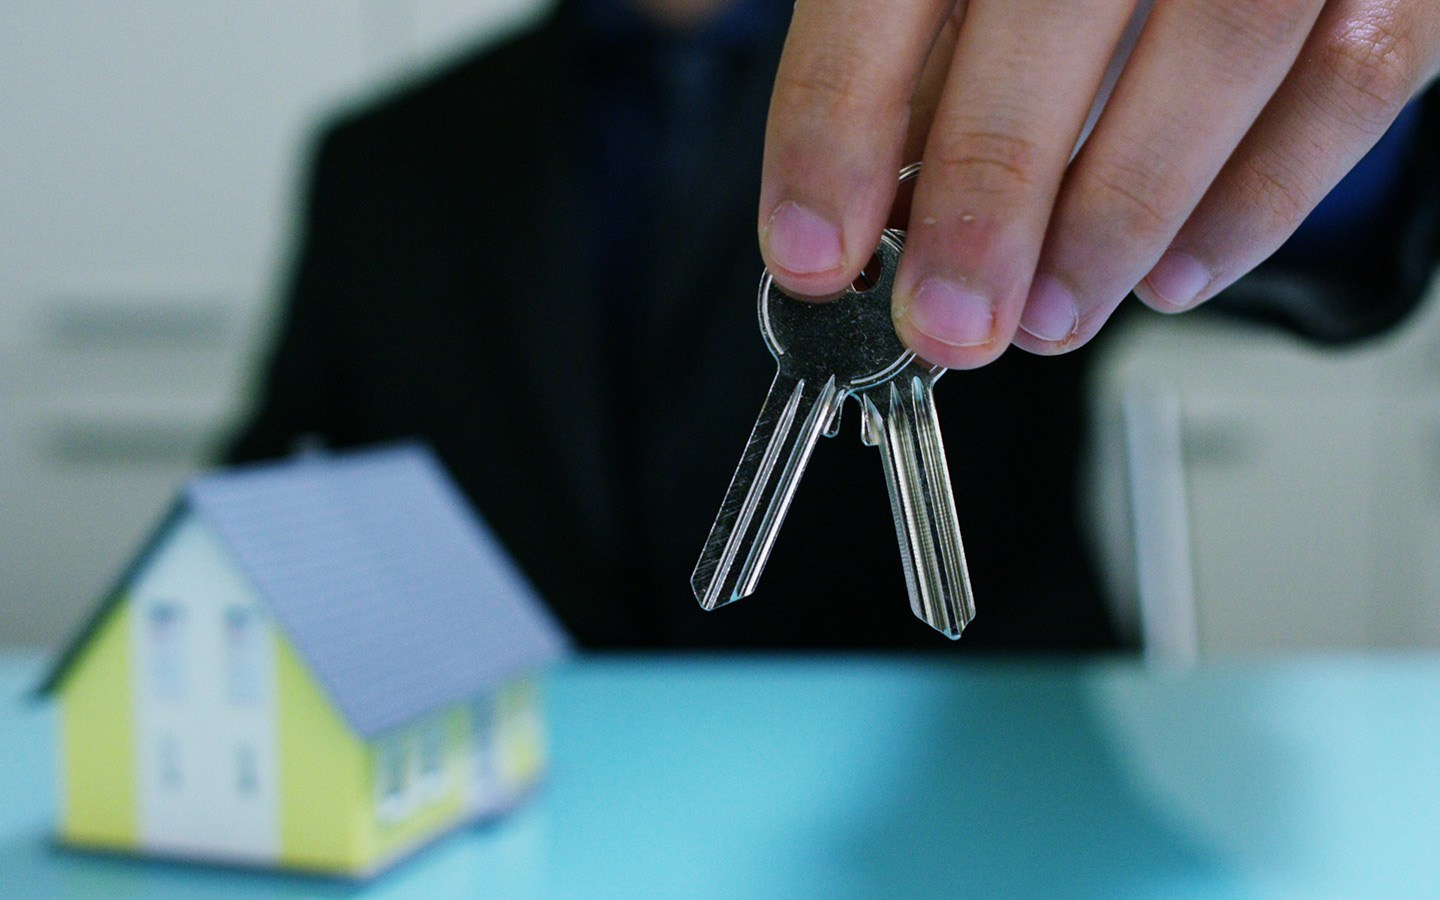 The Dubai real estate market has several rules in place to protect off-plan property buyers.